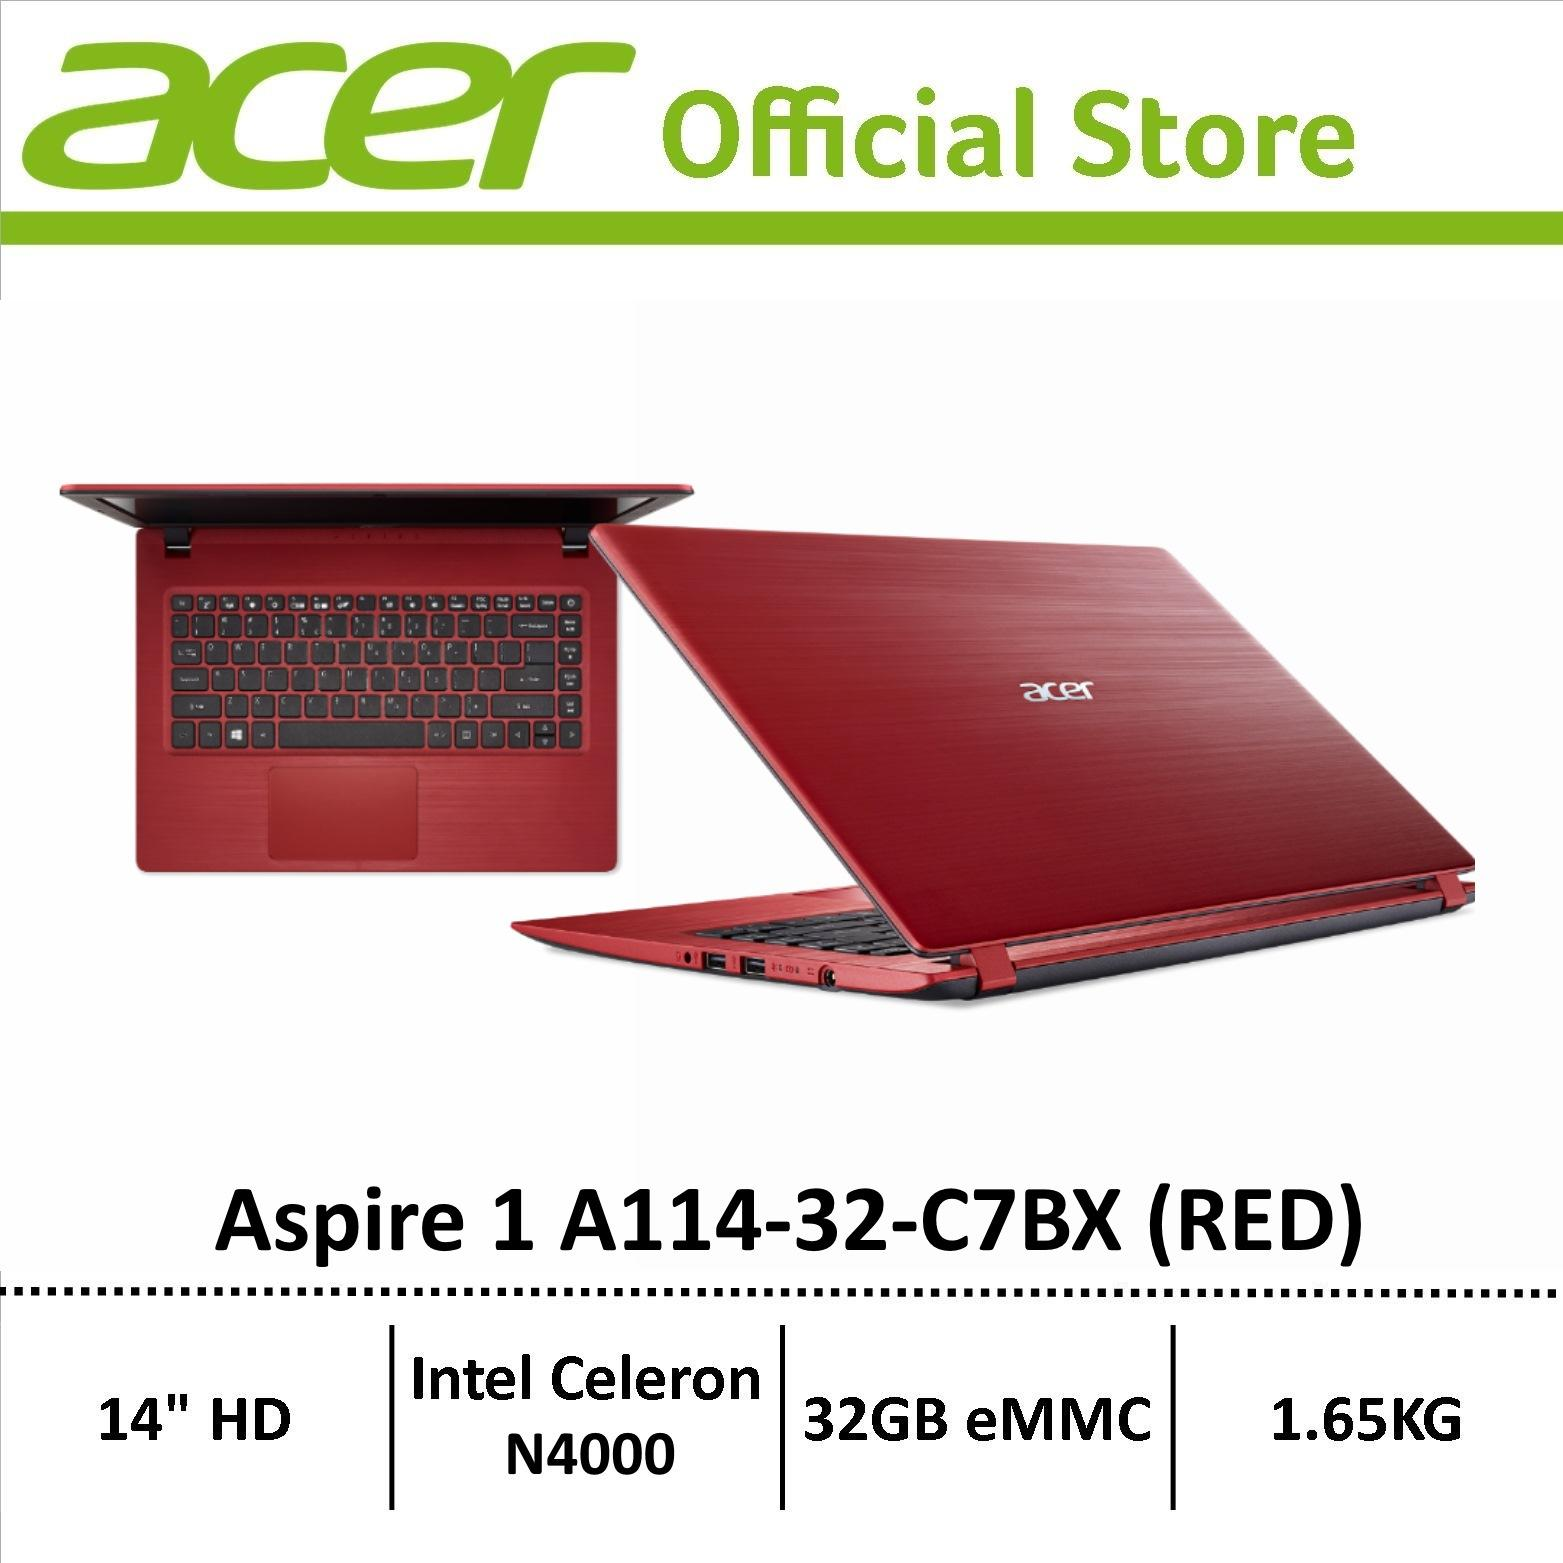 Deals For New Acer Aspire 1 A114 32 14 Hd 4Gb Ram 32Gb Emmc W10 Light Weight Laptop Free Mso 365P Online Exclusive